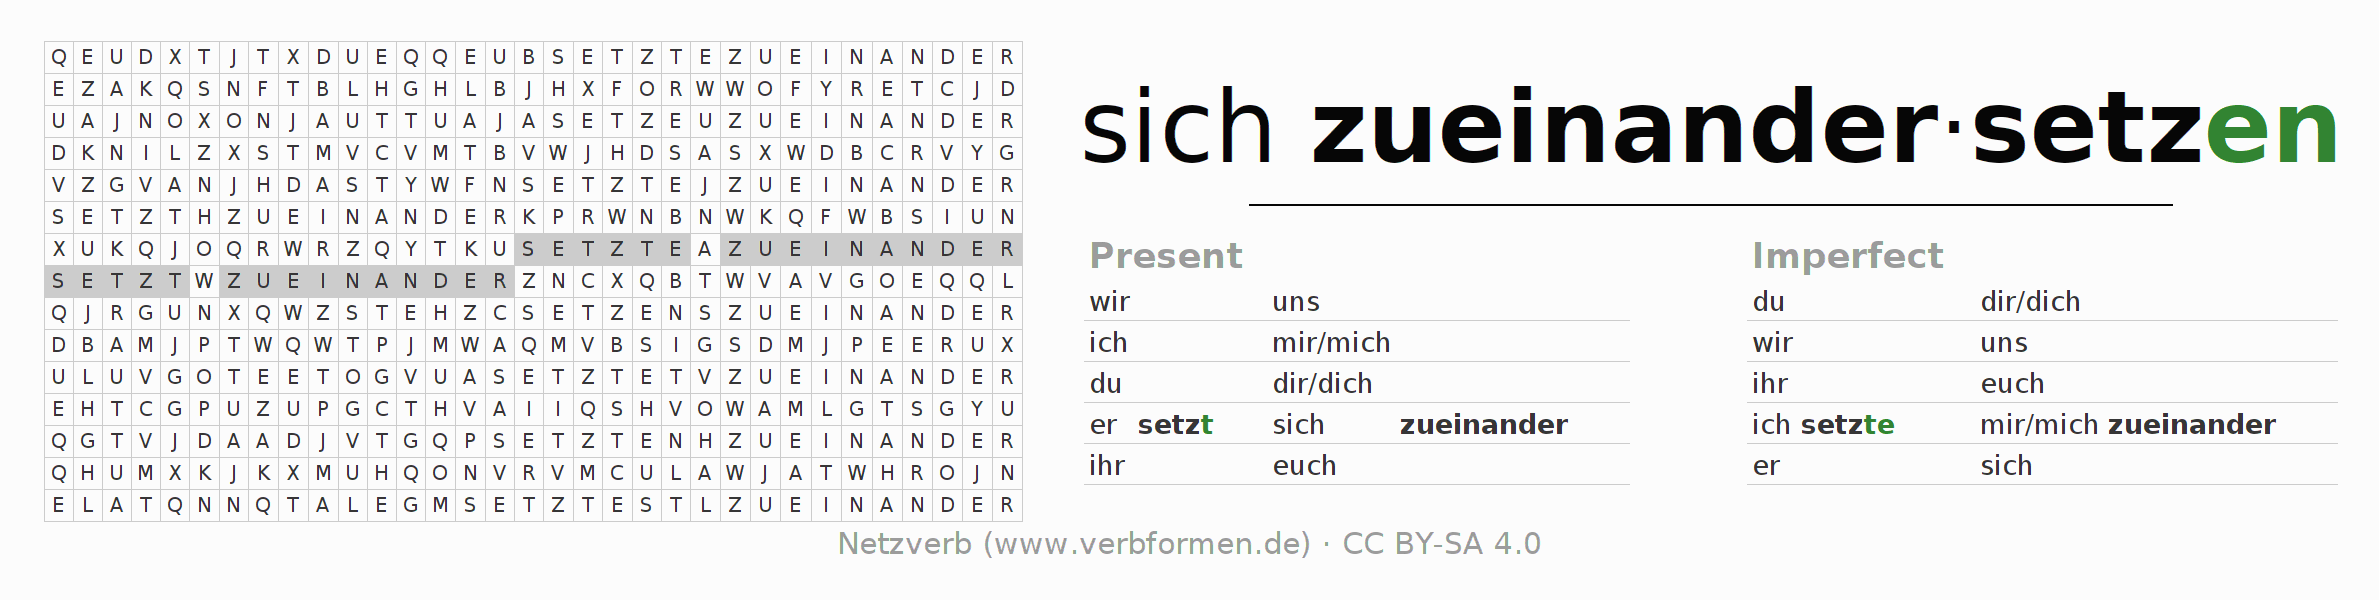 Word search puzzle for the conjugation of the verb sich zueinandersetzen